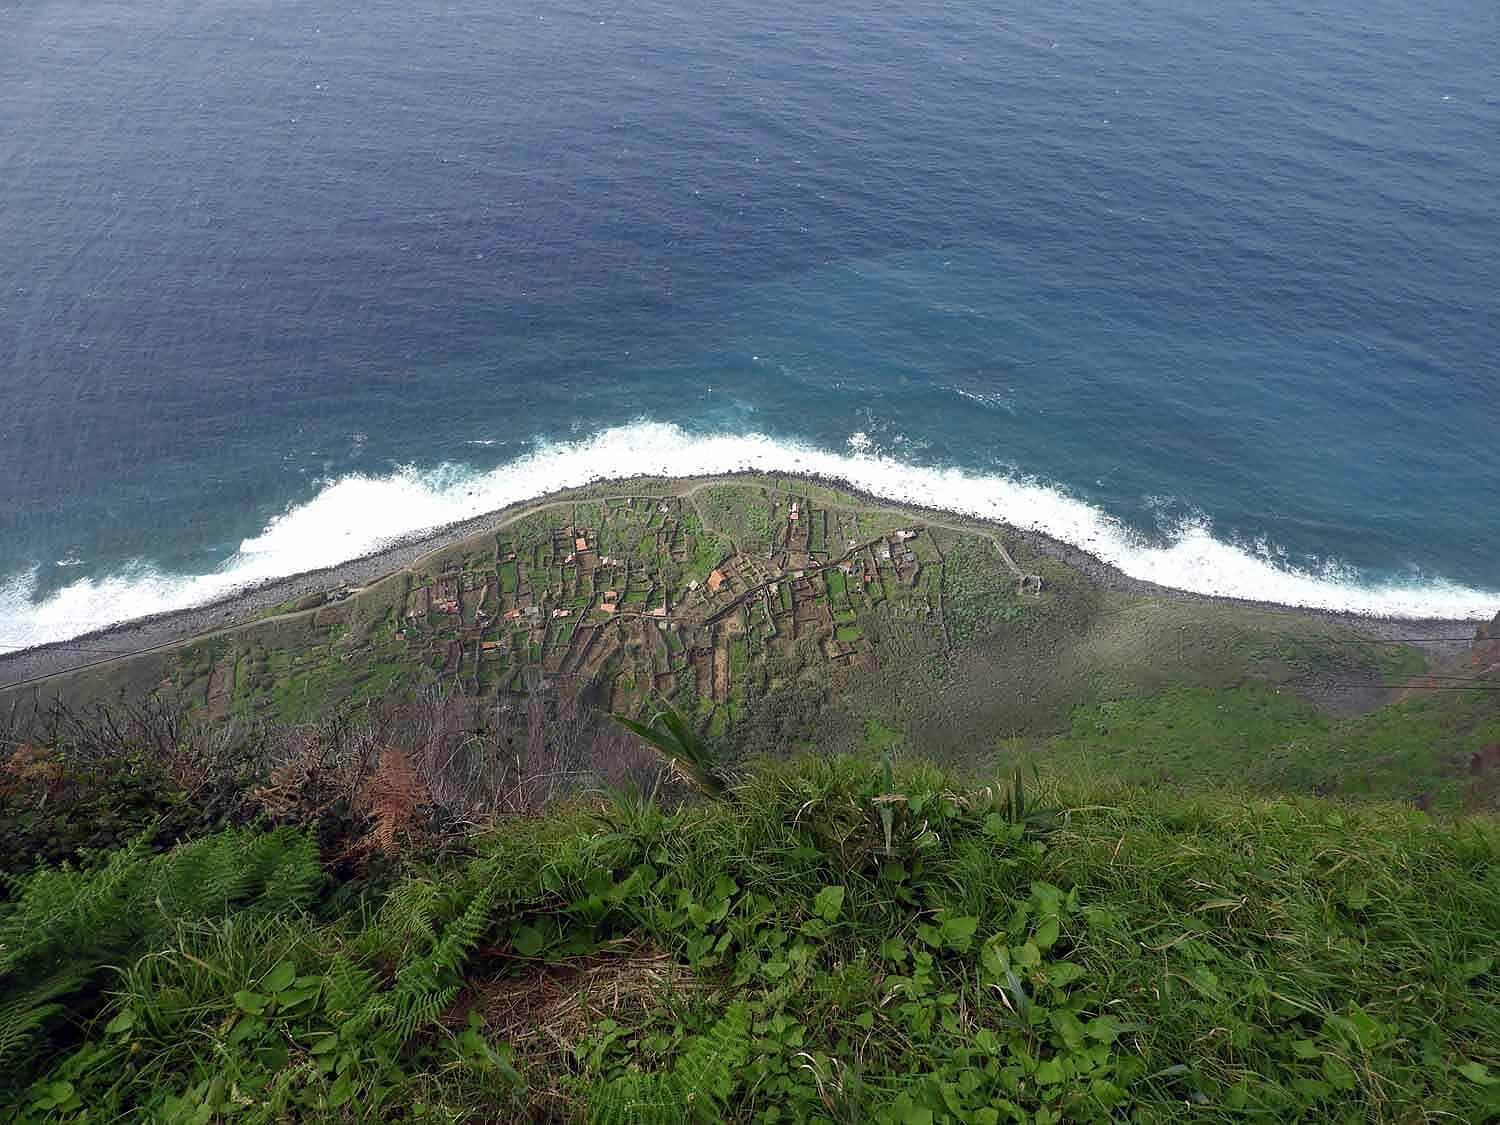 portugal-madeira-island-teleferico-achadas-da-cruz-top-view-shore.jpg